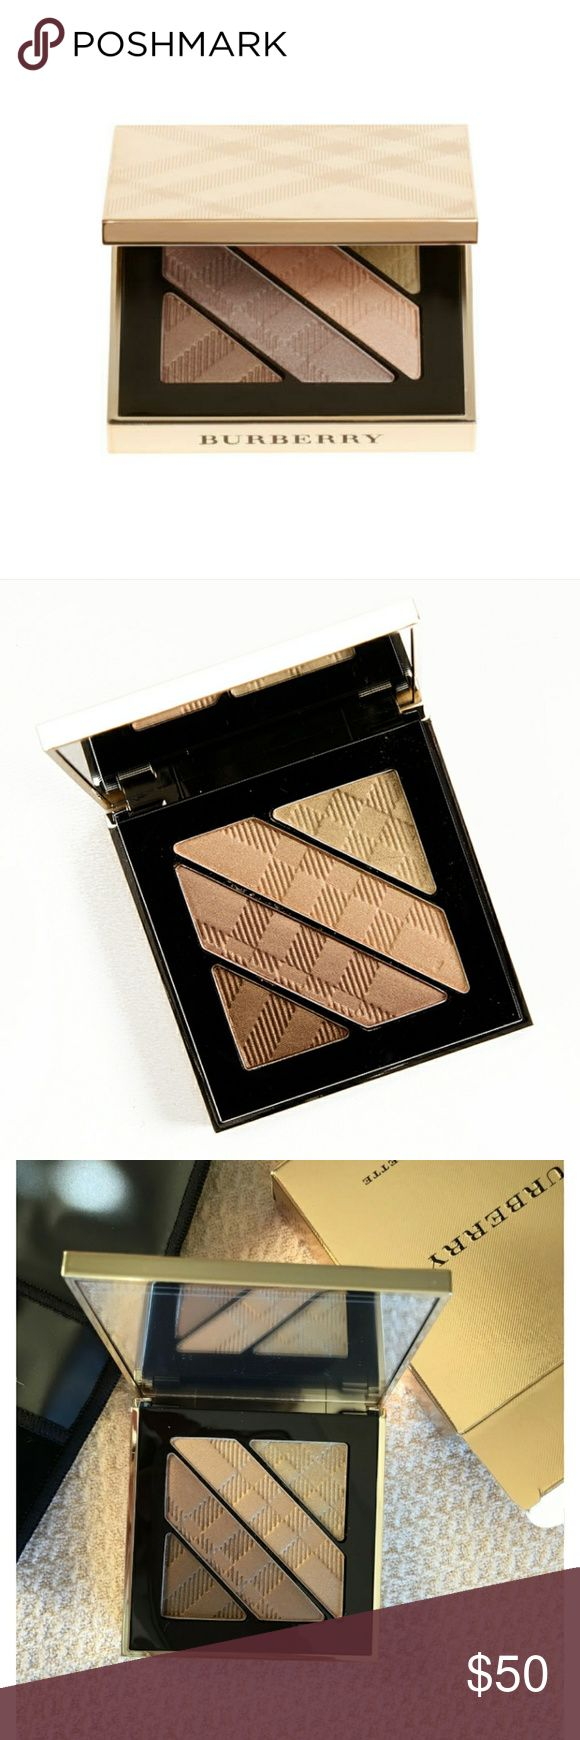 """NEW Burberry Complete Eye Pallette Brand New in box Burberry Complete Eye Palette (4) enhancing colors """"gold Shimmer No.28"""" comes with box, velvet carrying case, & 3 mini brushes. (ALWAYS ALL AUTHENTIC) I also have the other matching Burberry pieces listed in my closet bundle & Save, I offer 15% off 3 or more items. BRAND NEW!! Burberry Makeup Eyeshadow"""